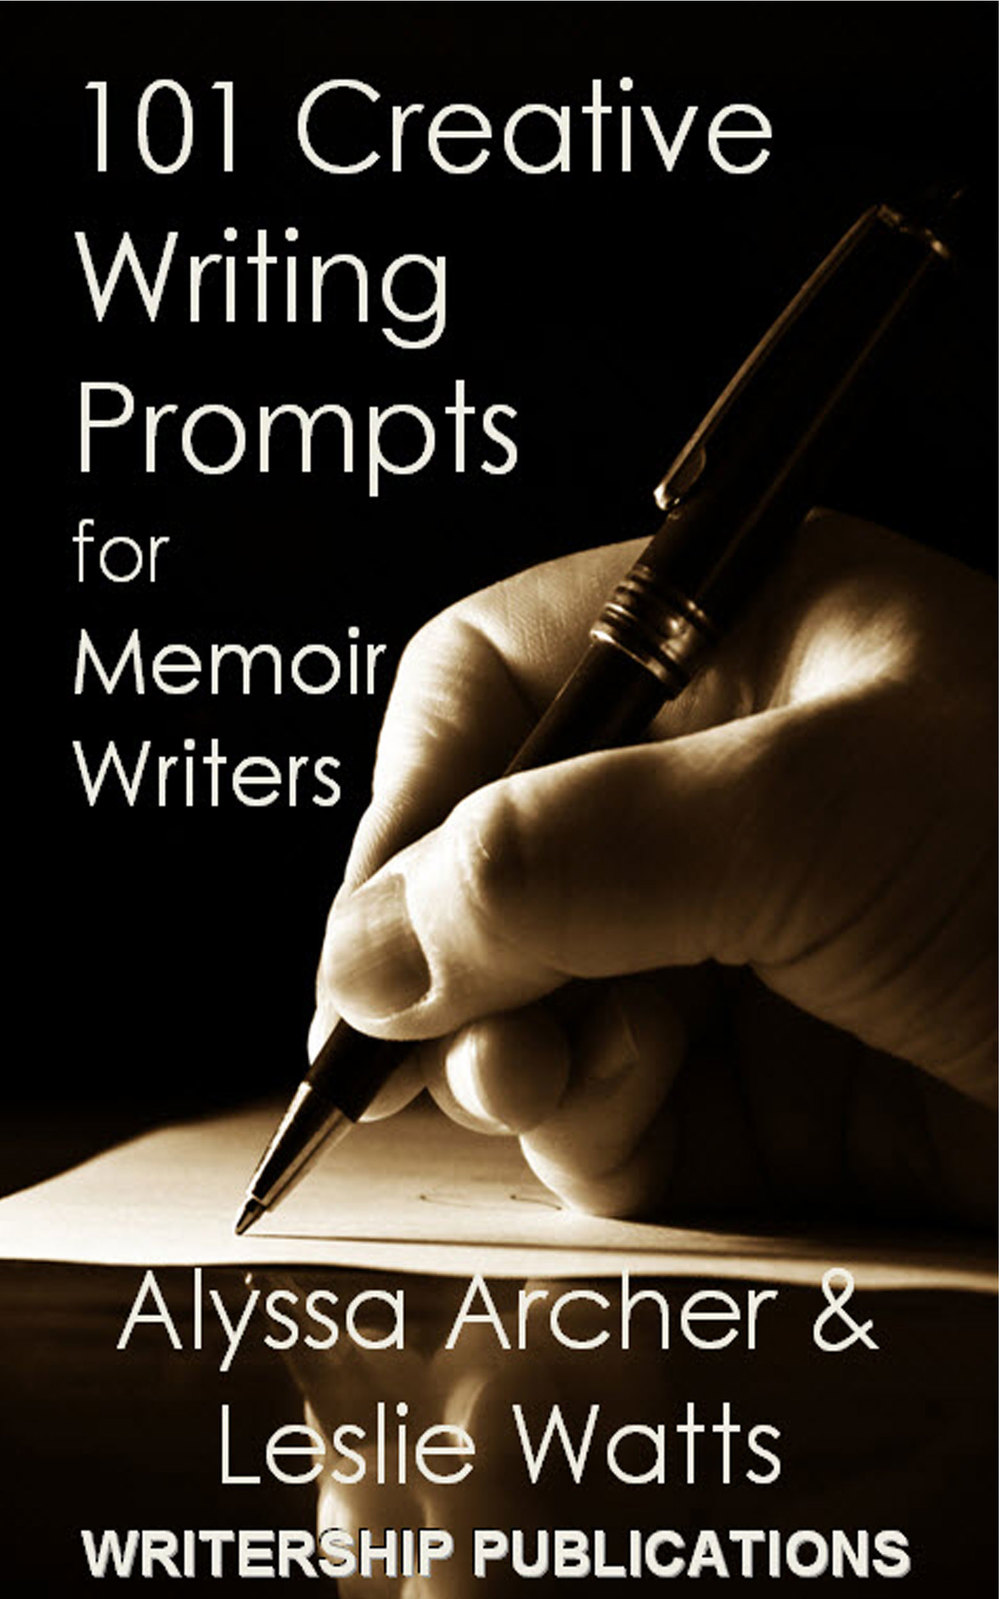 Creative-Writing-Prompts-for-Memoir-Writers.jpg